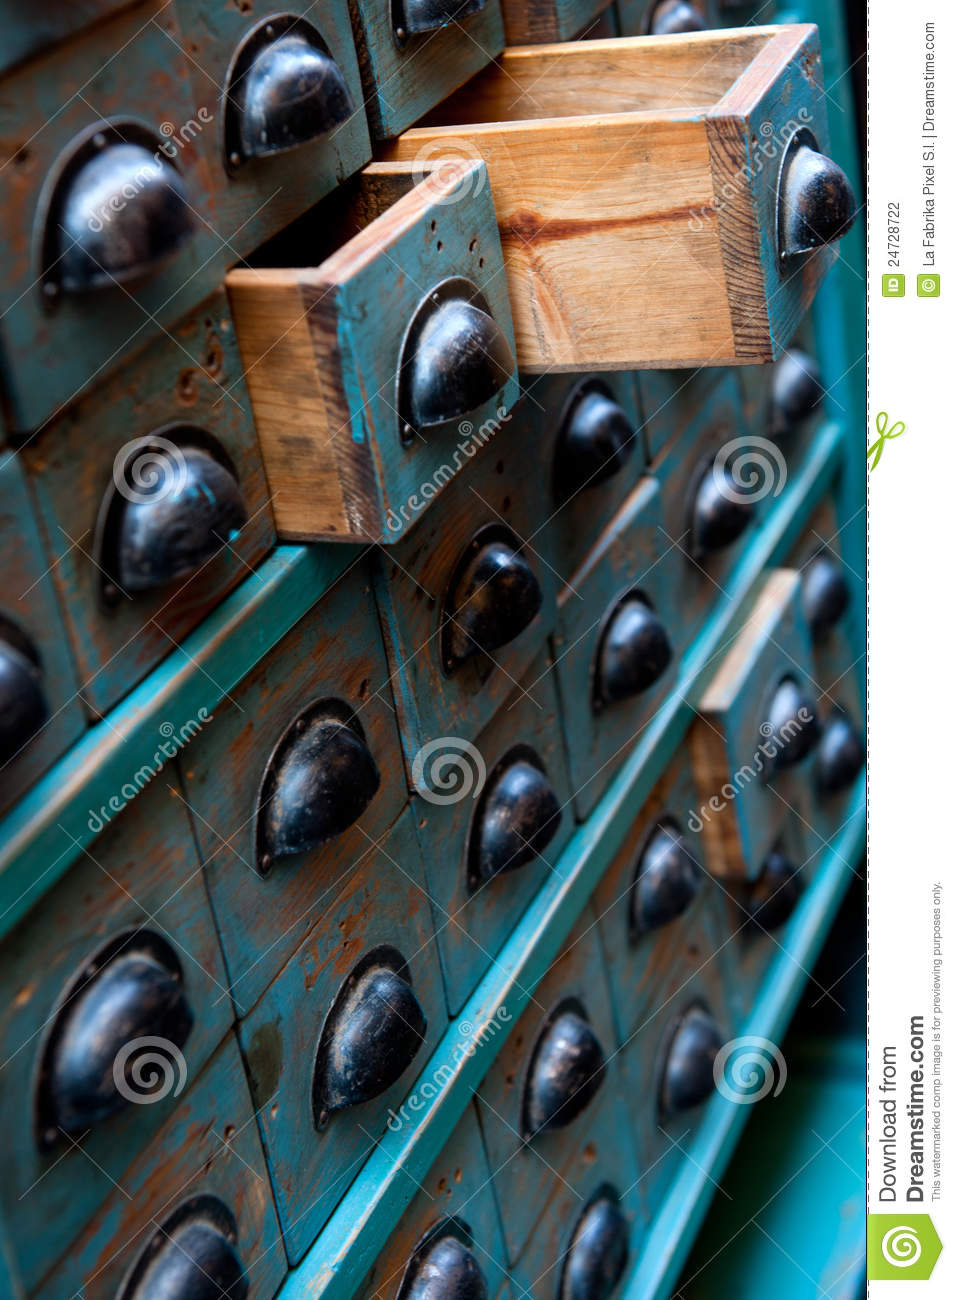 Antique Apothecary Cabinet Vintage Apothecary Chest Stock Photography Image 24728722